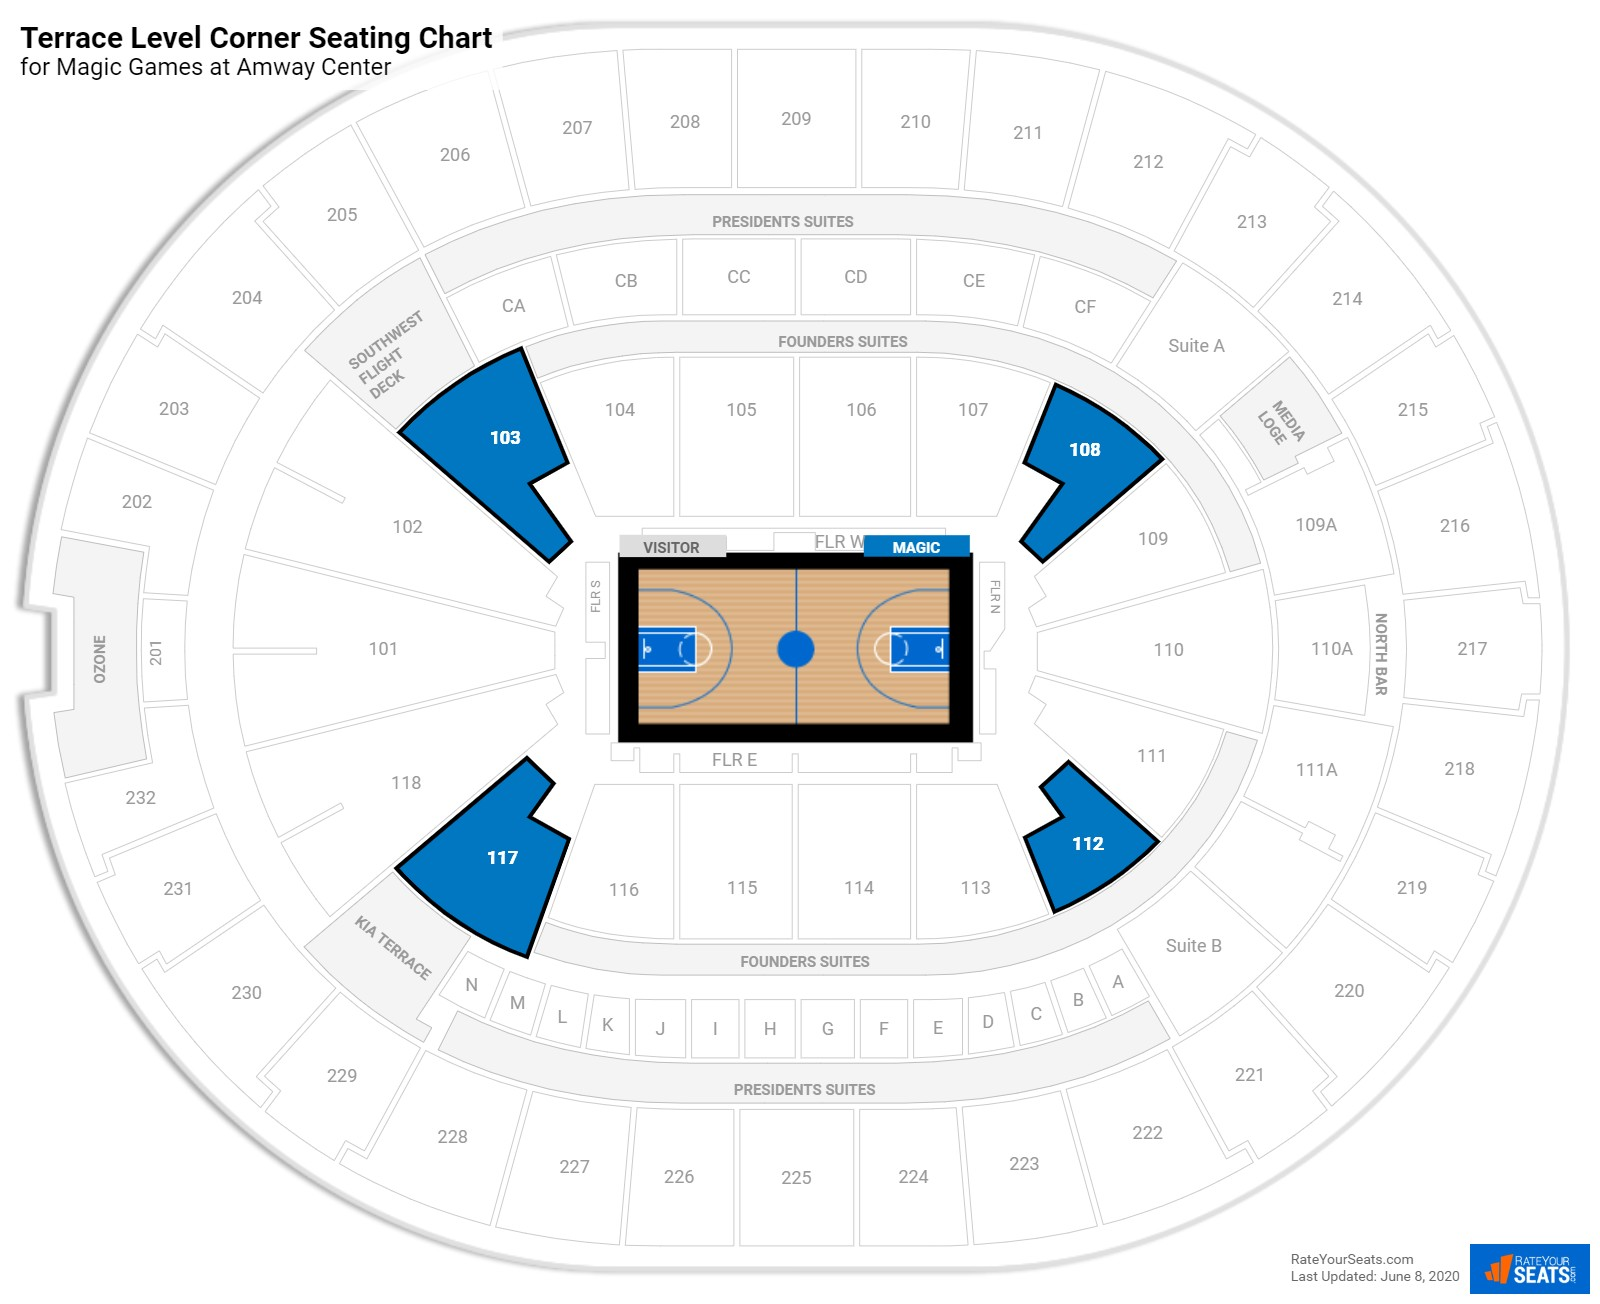 Amway Center Terrace Level Corner seating chart